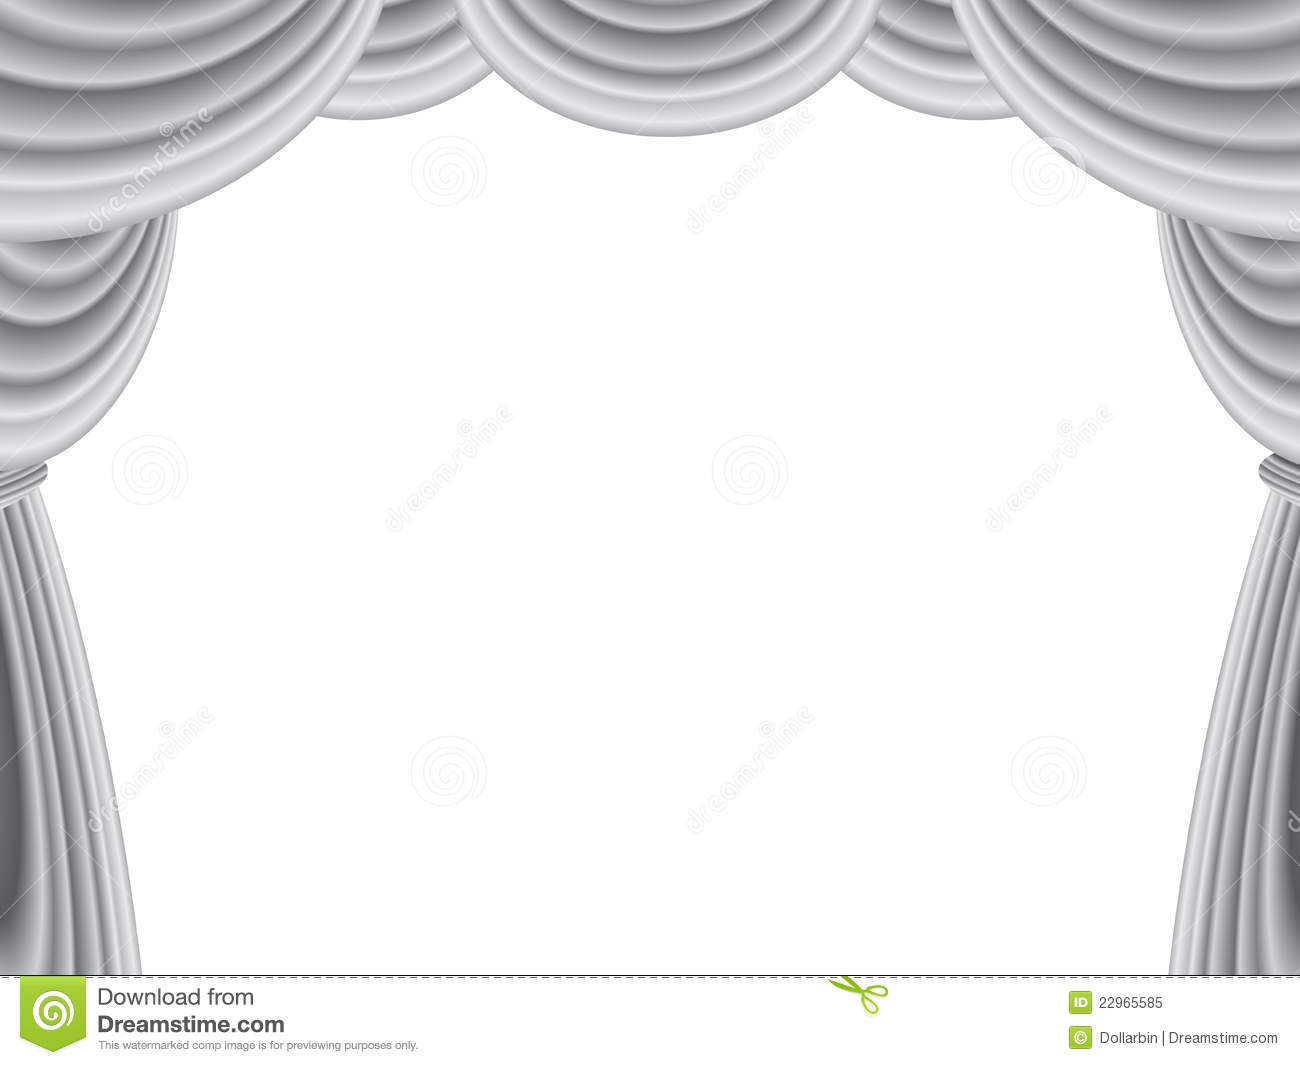 Velvet Stage Curtain Royalty Free Stock Photo - Image ...